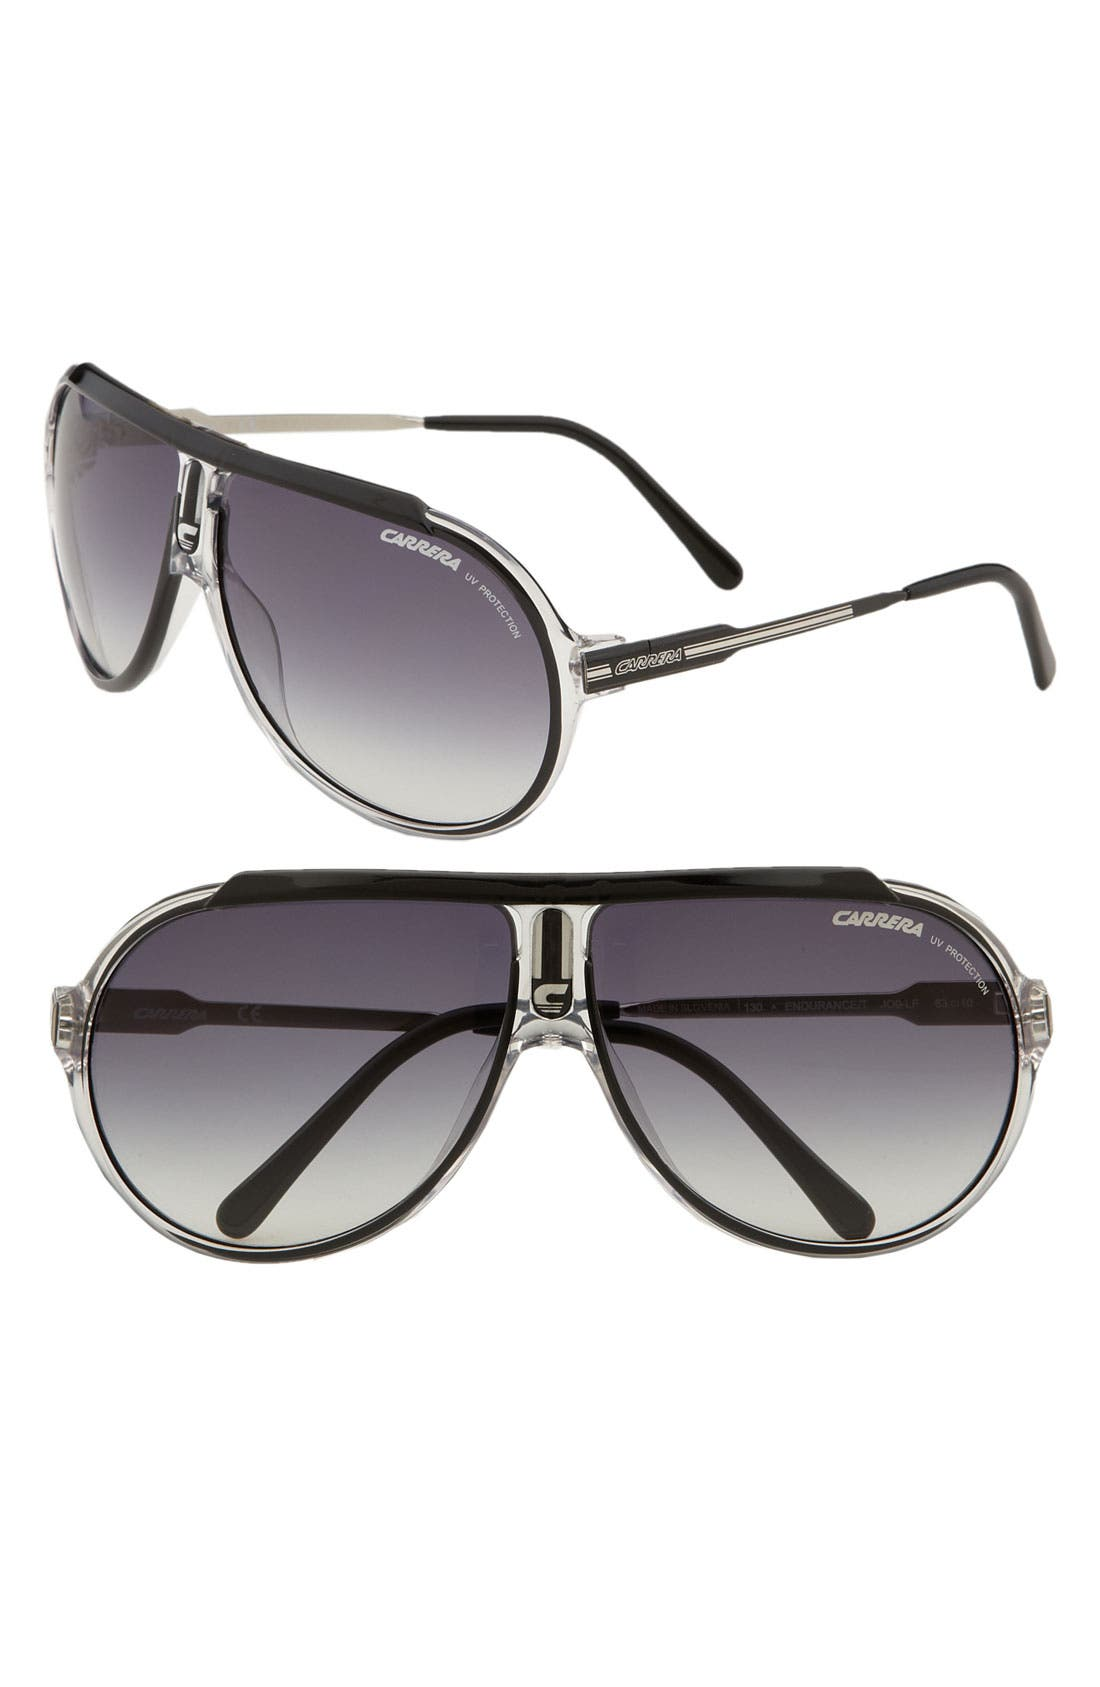 Main Image - Carrera Eyewear 'Endurance' 63mm Aviator Sunglasses